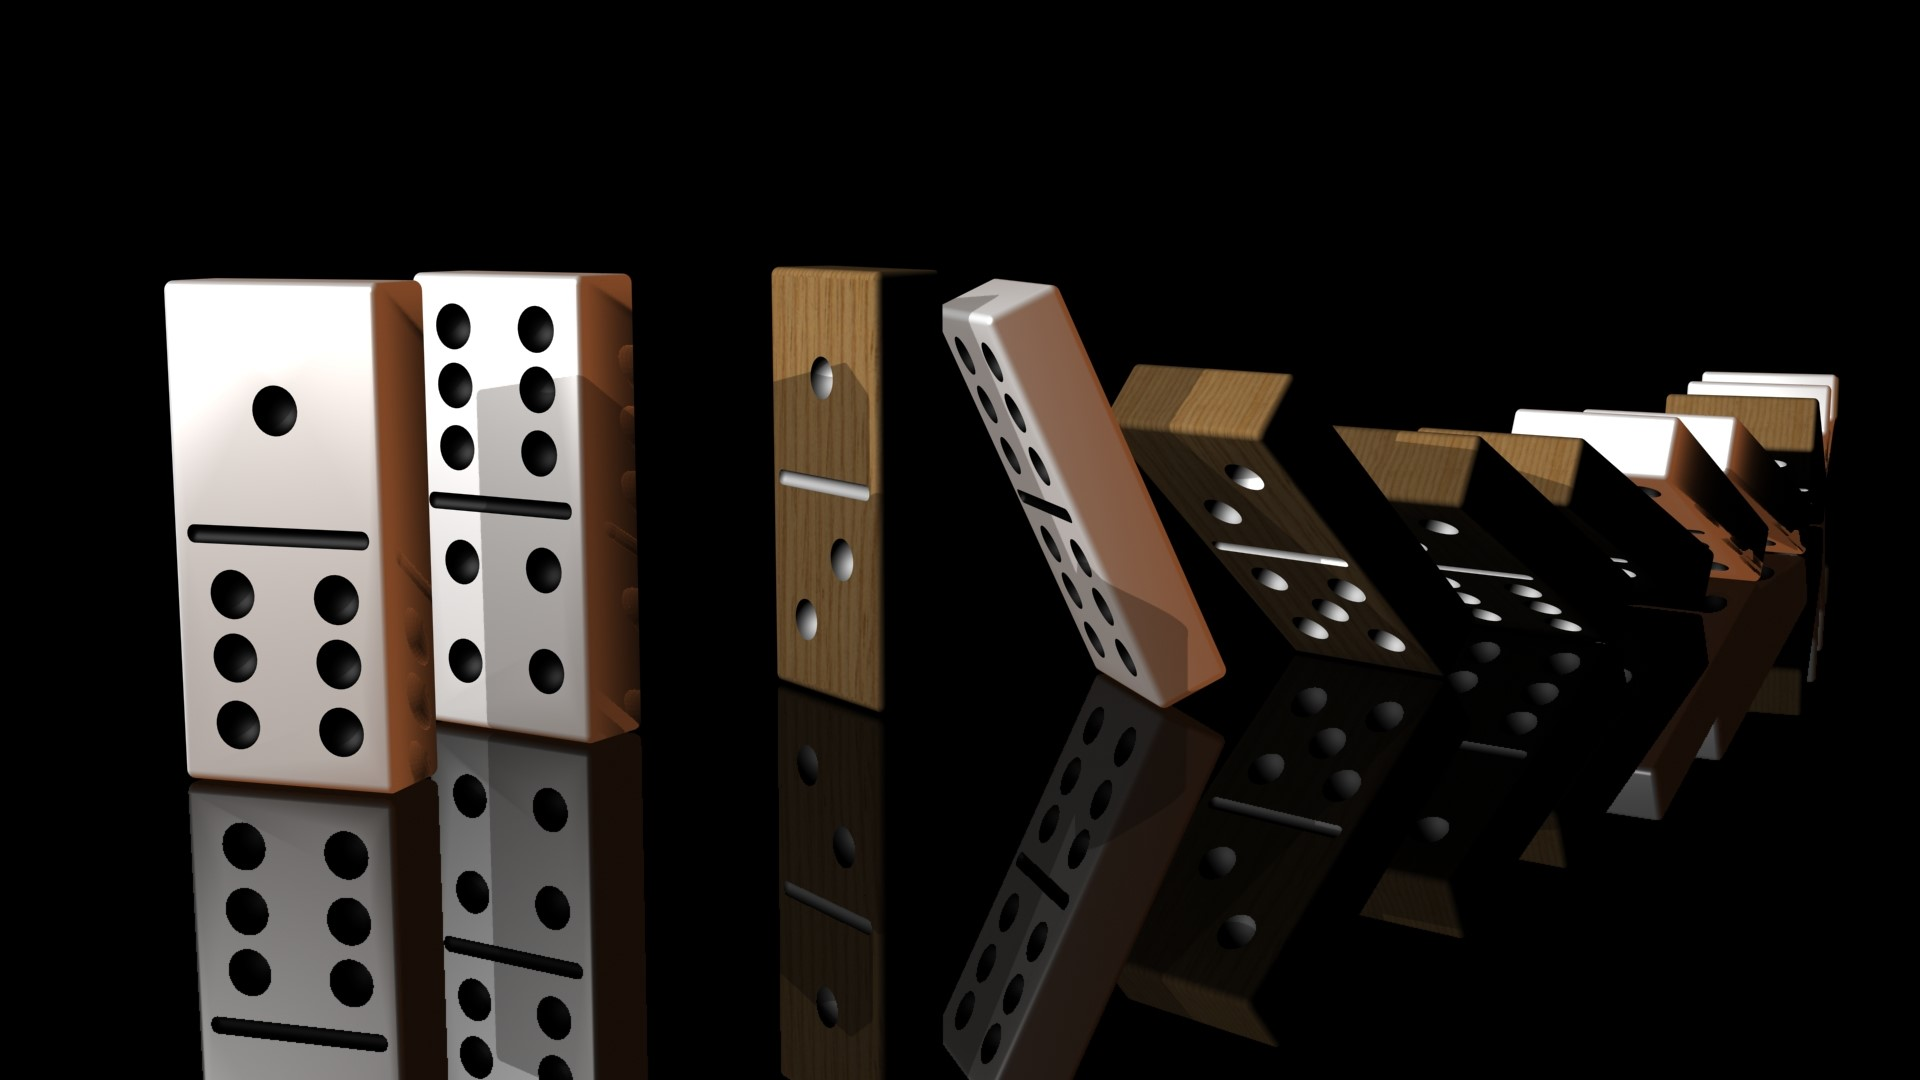 How significant was the Domino Theory in causing the USA to be part of the vietnam conflict?